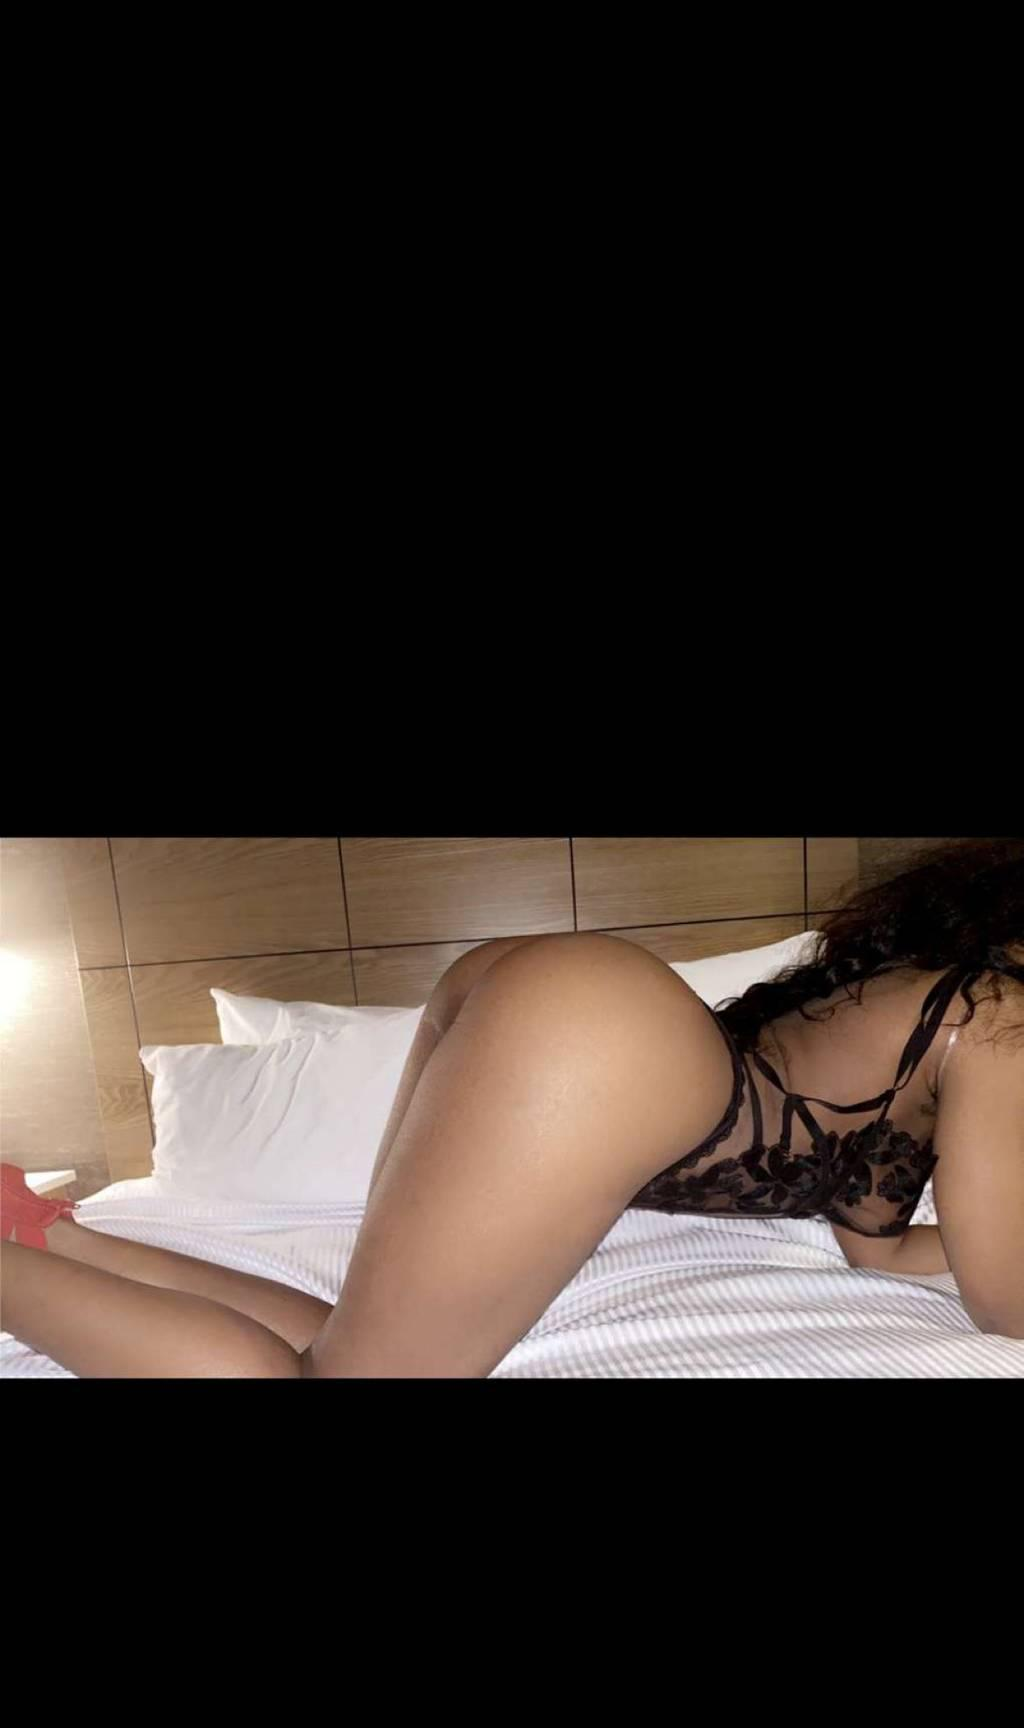 DOWNTOWN Baby Gigi Full Service GFE petite and gentle freak